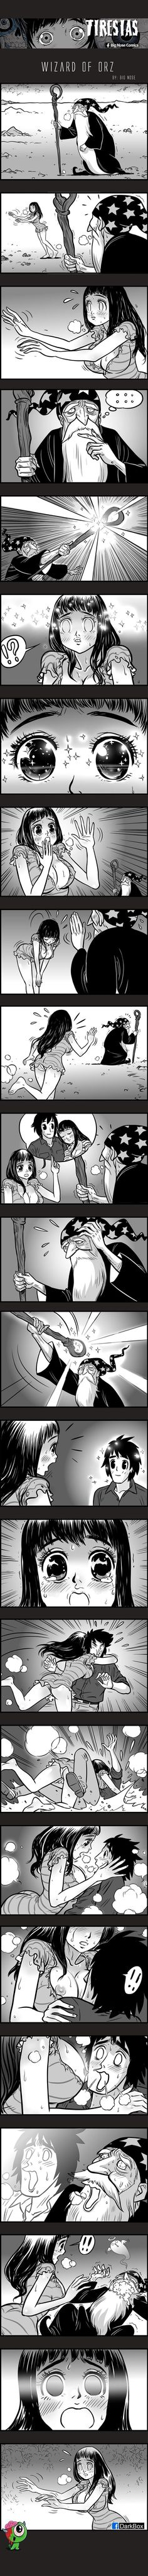 Chapter 49 Wizard Of Horz